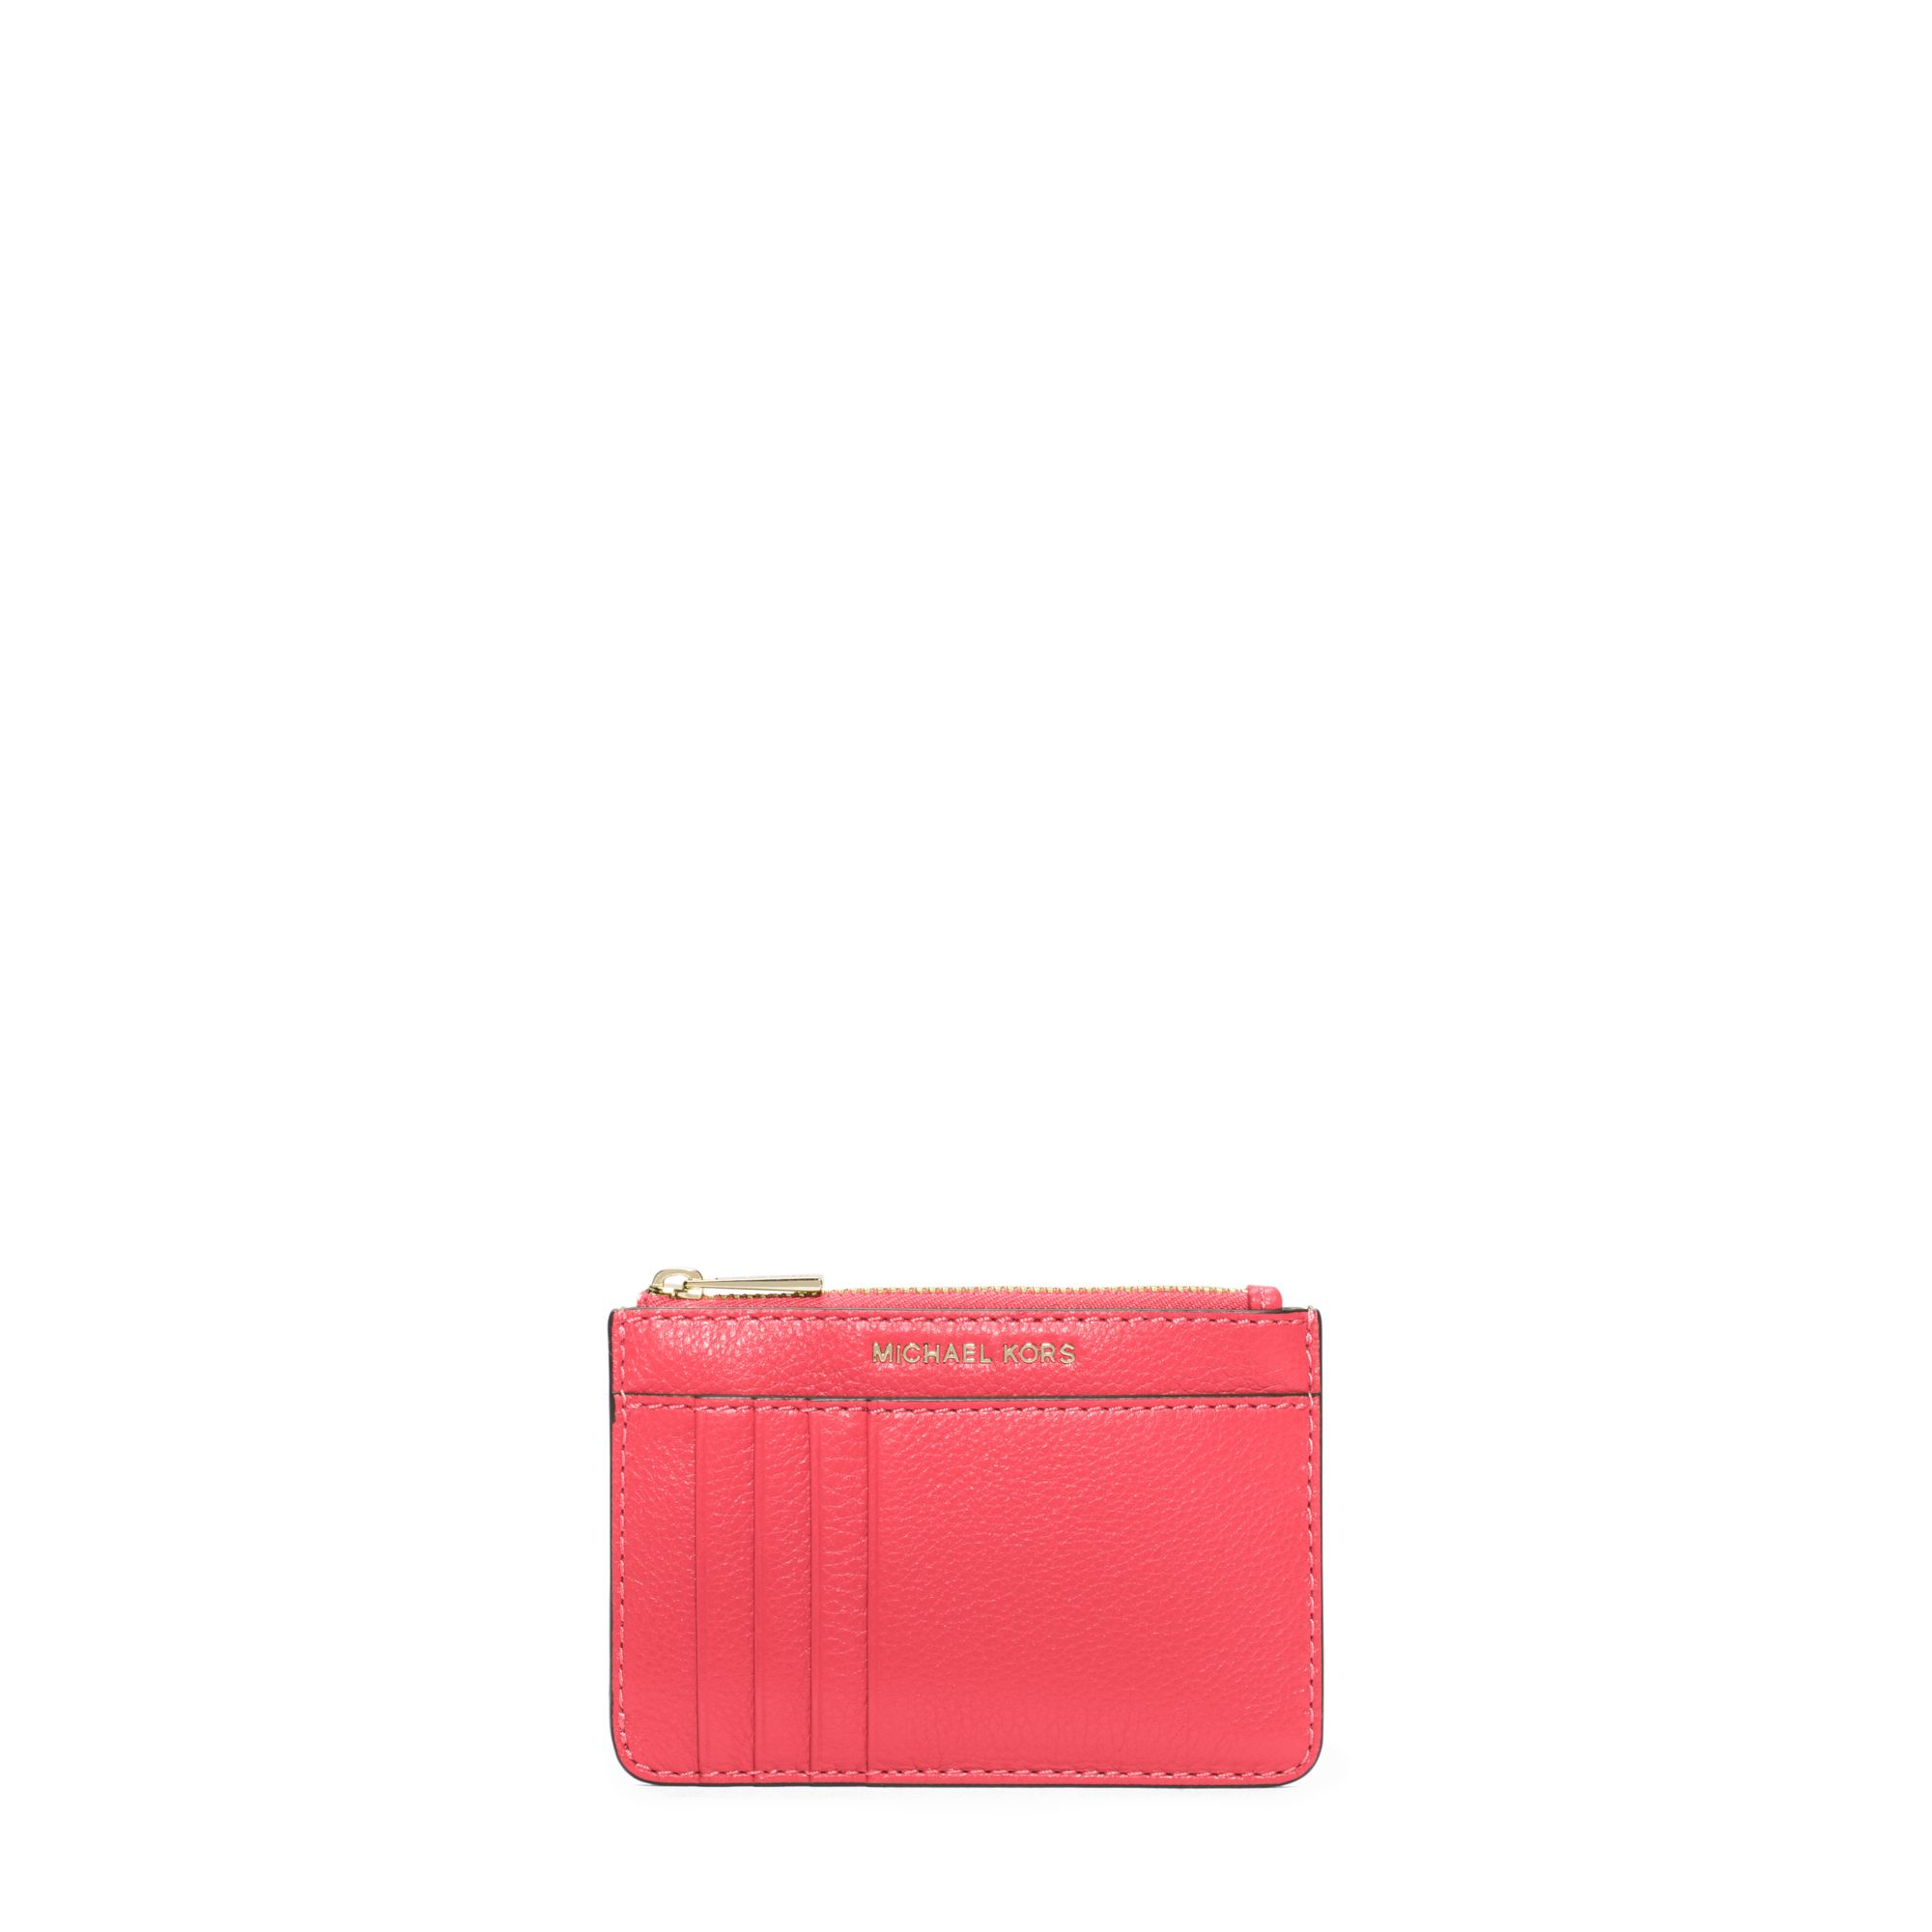 87bc8e853609 Michael Kors Liane Leather Card Holder in Pink - Lyst